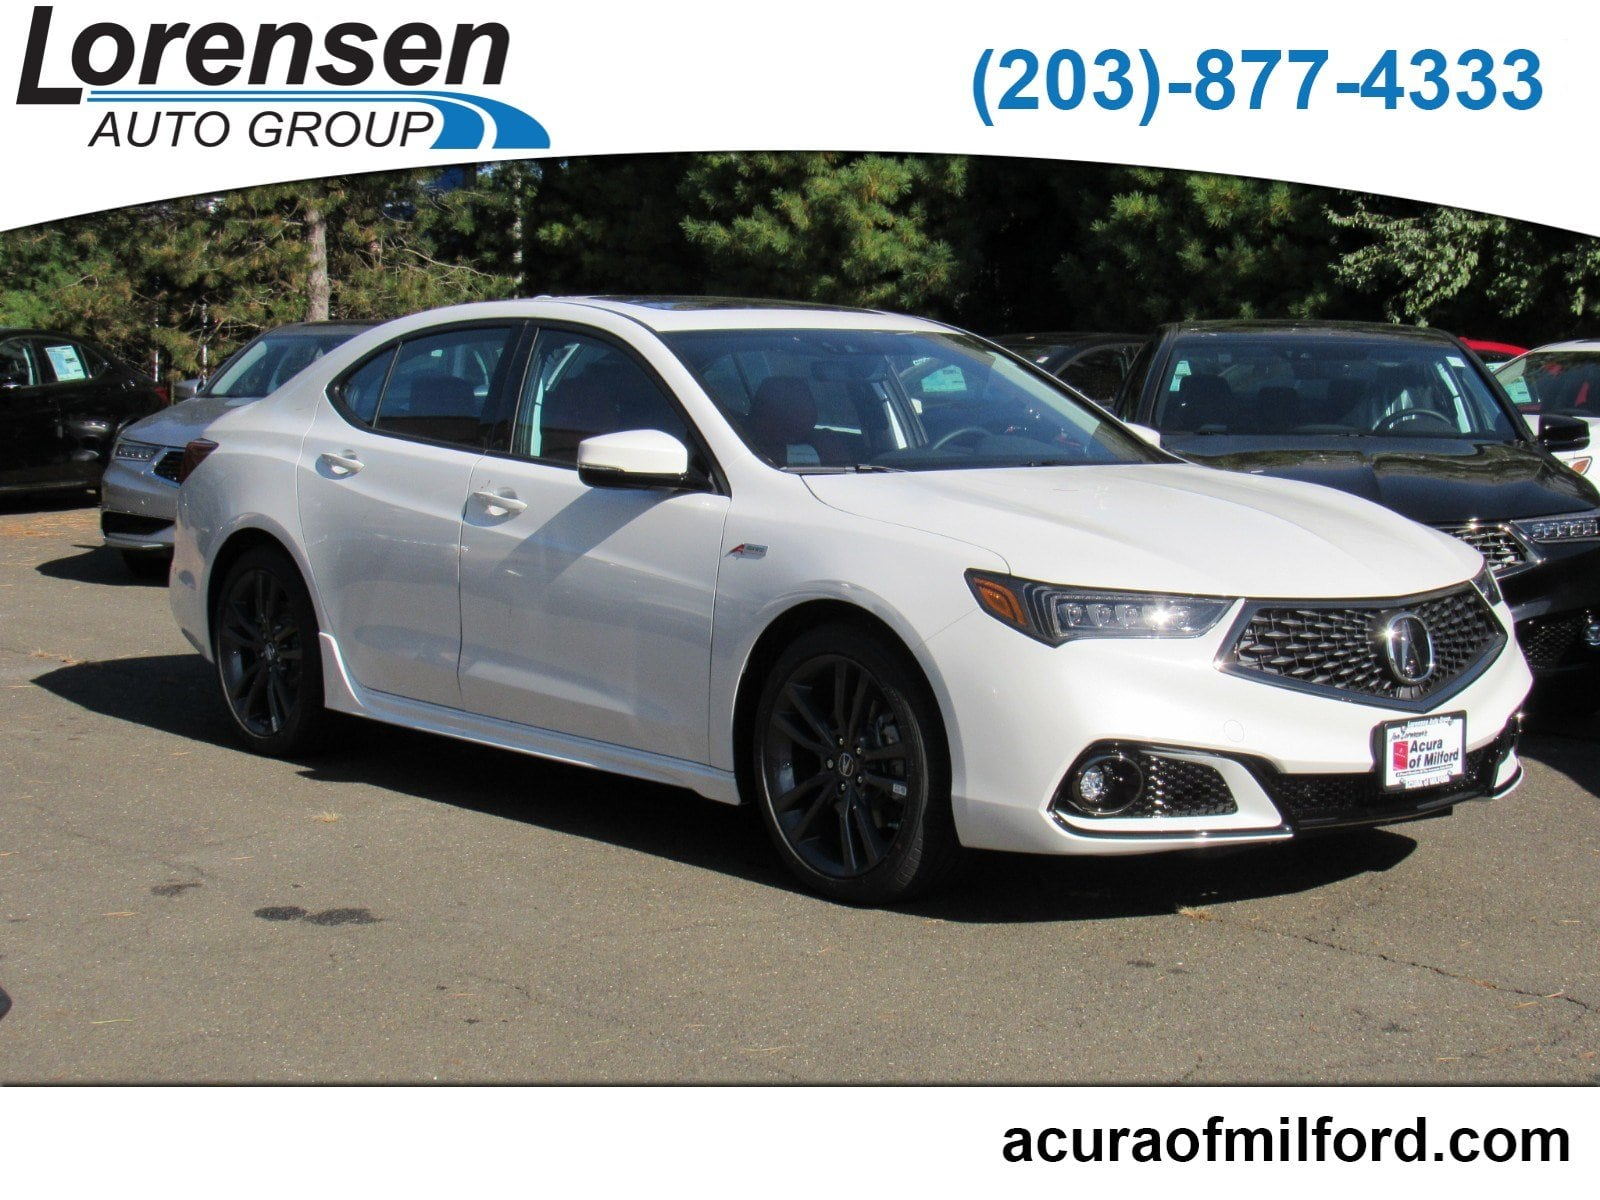 New 2019 Acura TLX 2 4 8 DCT P AWS with A SPEC RED Sedan in Milford